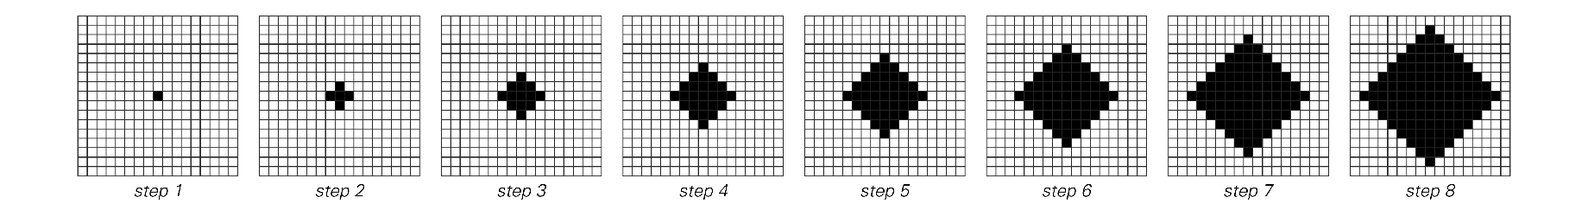 Successive steps in evolution of two-dimensional cellular automaton